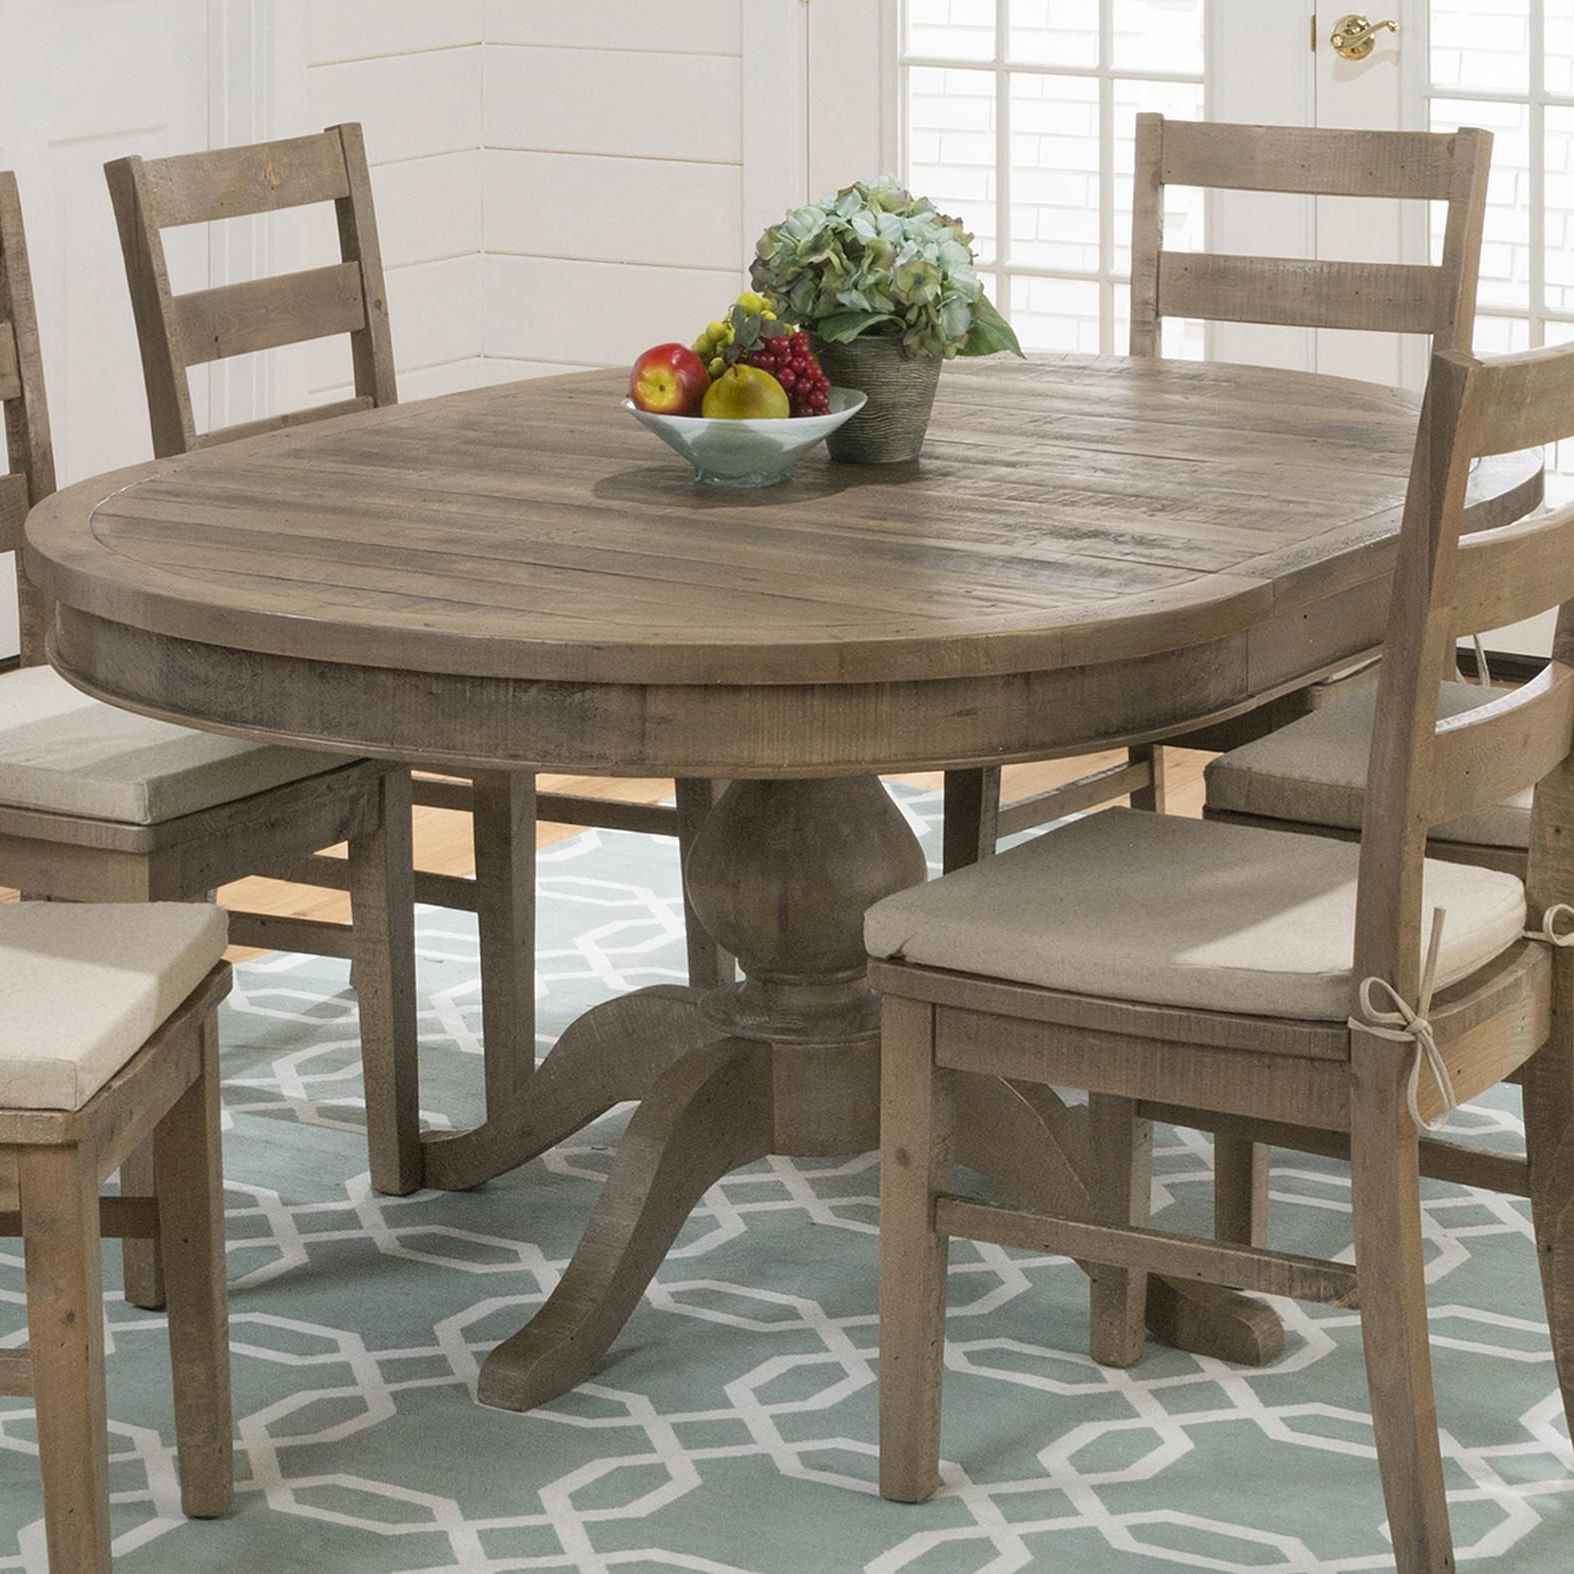 Most Recent Morris Round Dining Tables In Slater Mill Pine Reclaimed Pine Round To Oval Dining Table (Gallery 7 of 30)